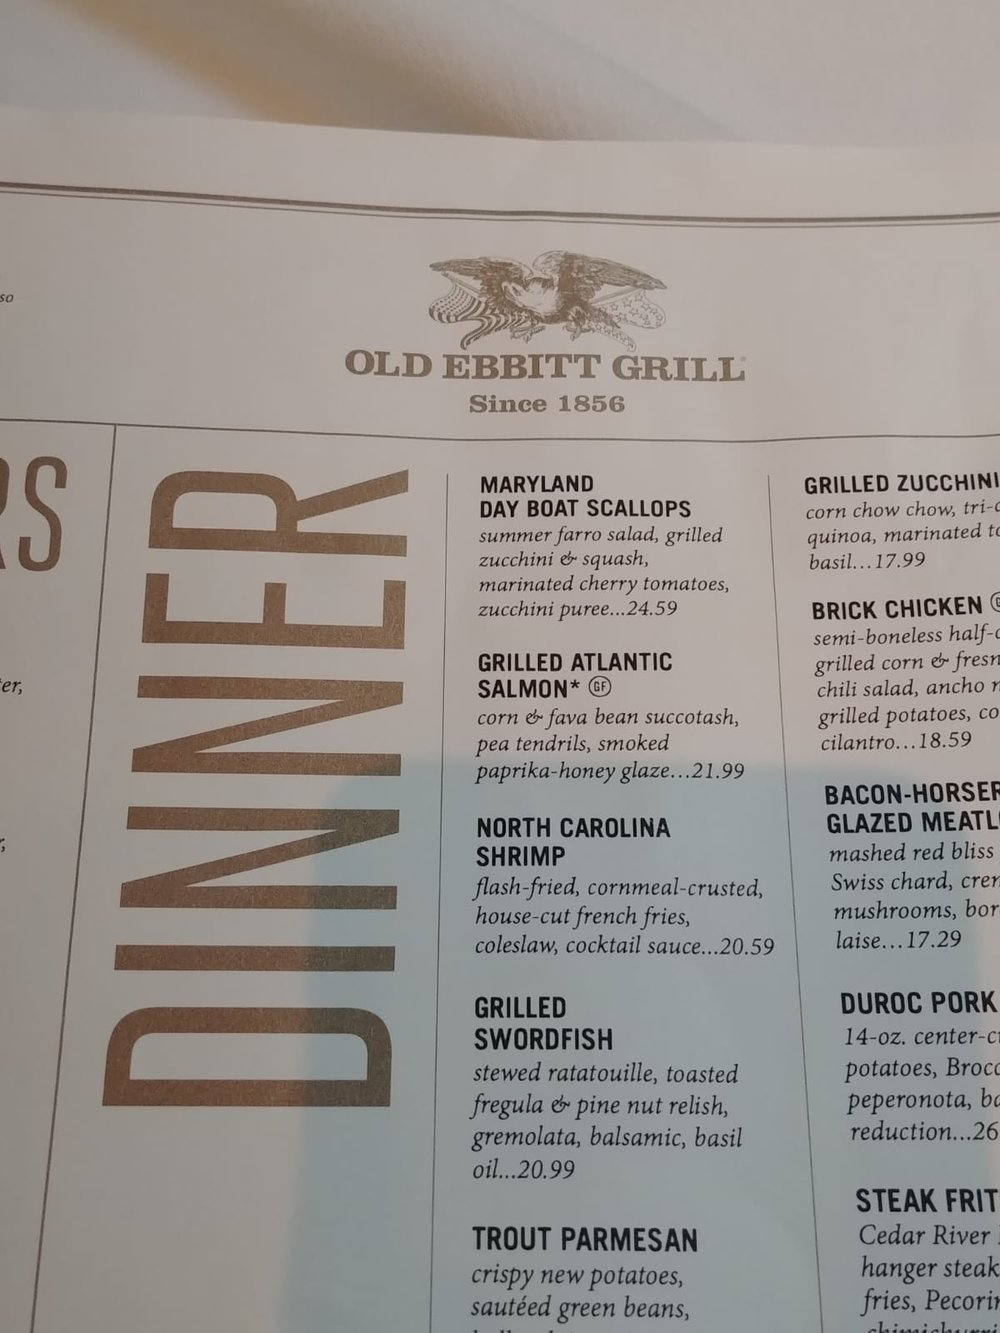 Old Ebbitt Grill America Washington DC Restaurant